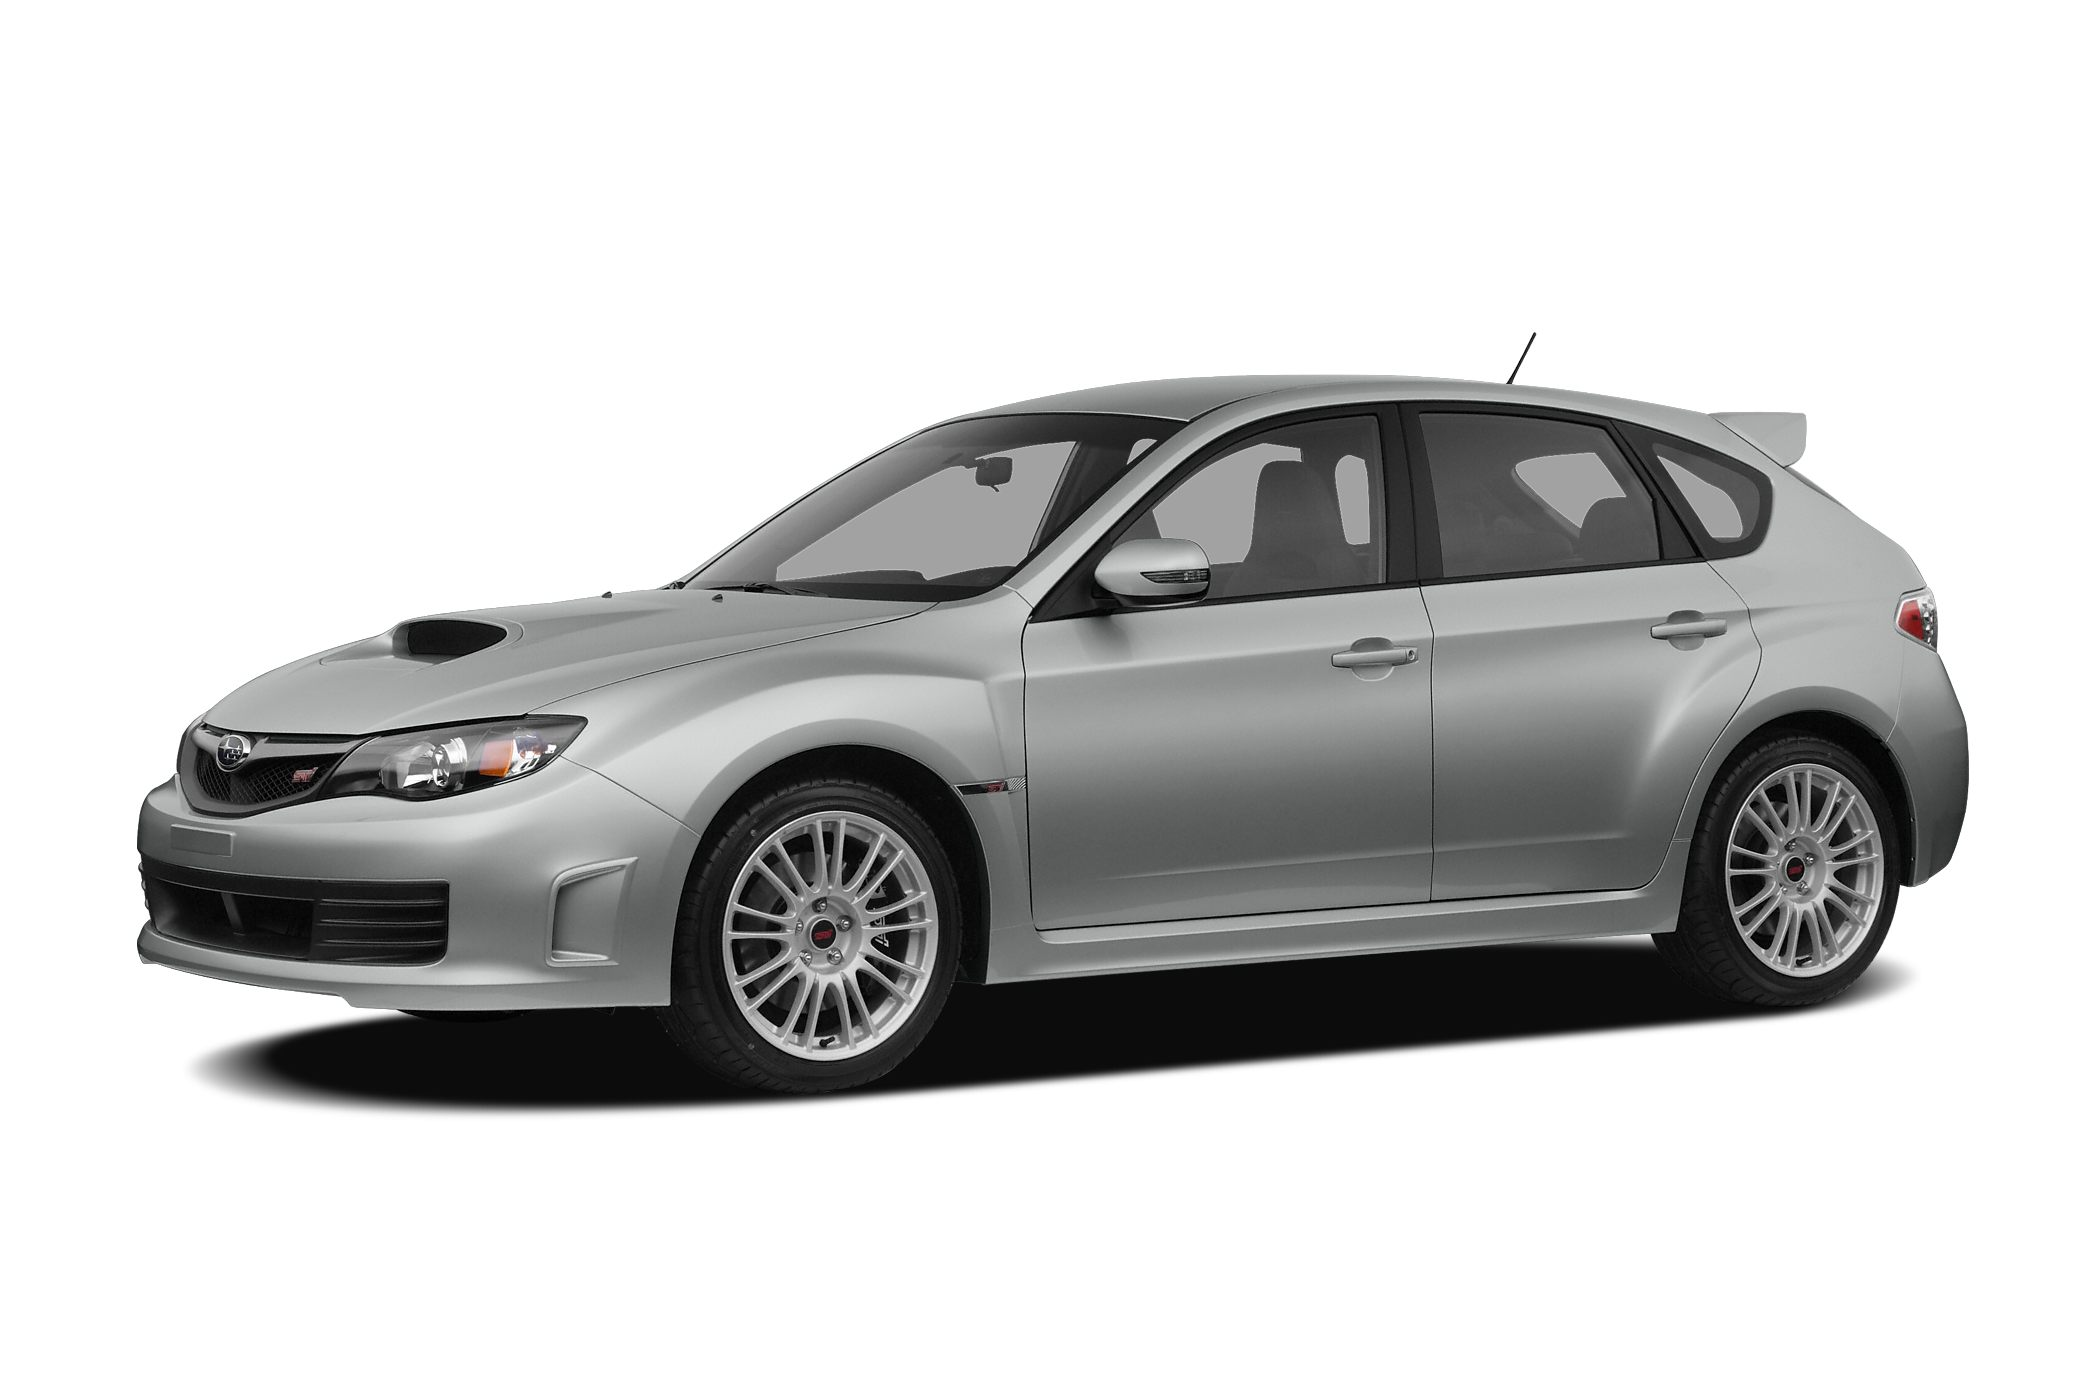 2010 Subaru Impreza WRX Sti Hatchback for sale in Moorhead for $0 with 57,952 miles